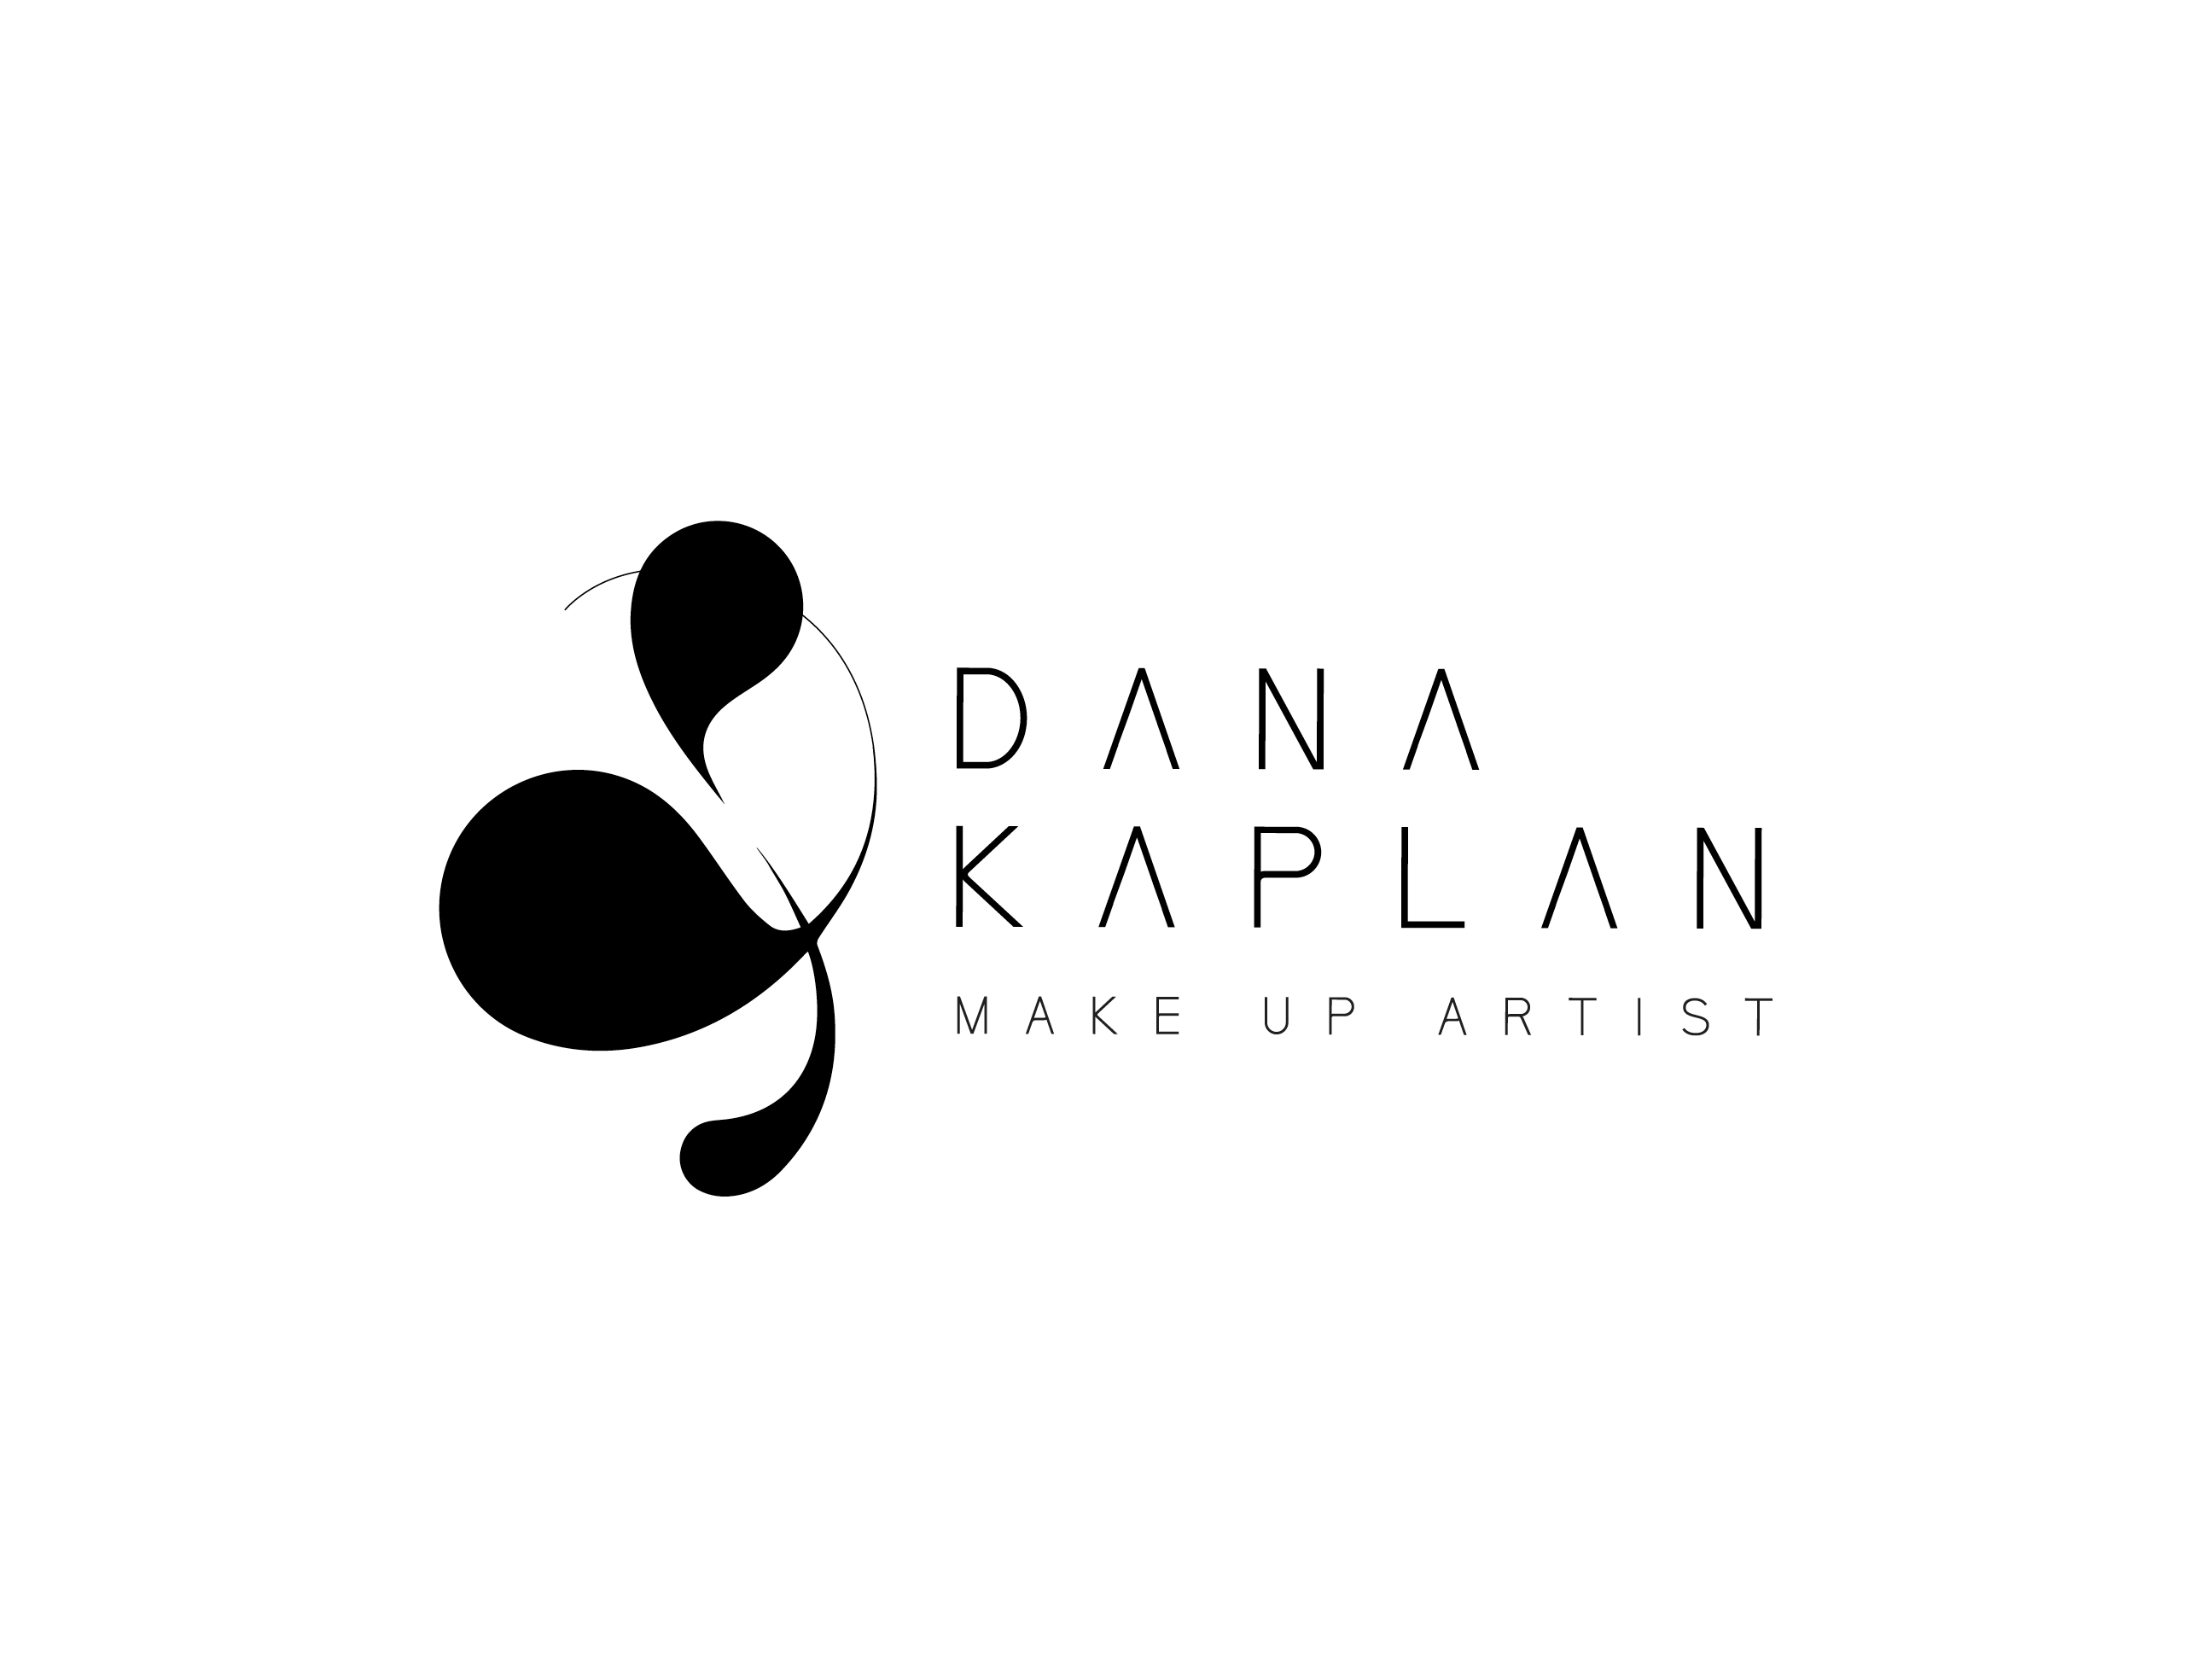 dana kaplan | Make up artist